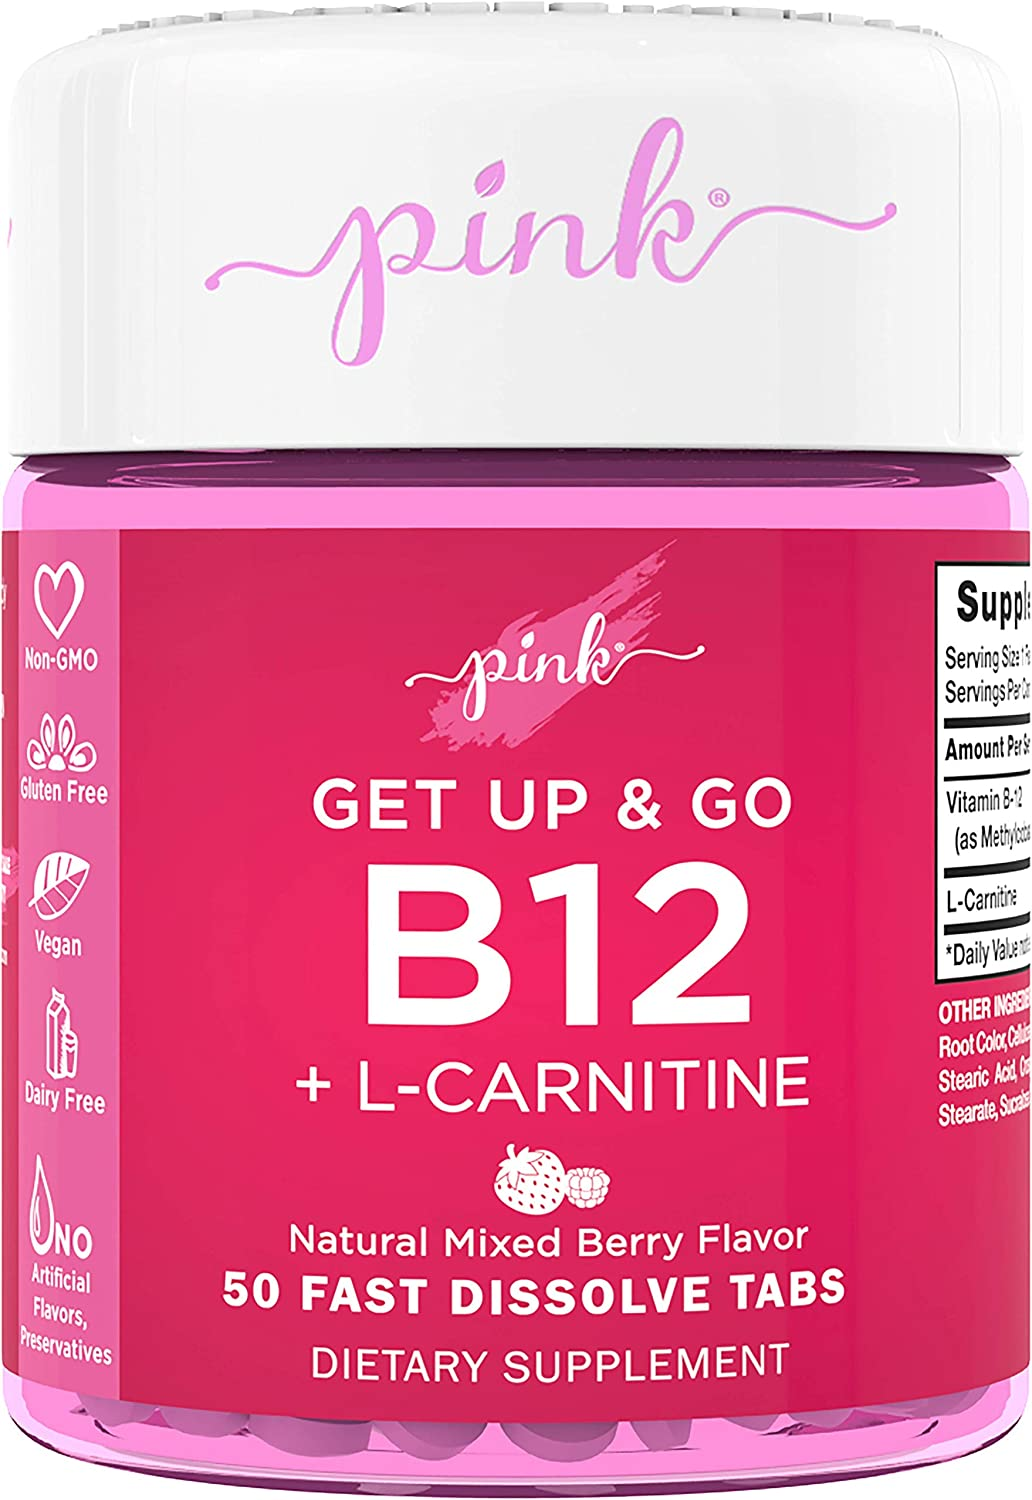 Pink Get Up & Go B12 Vitamin for Women | 50 Dissolvable Tablets | B12 5000mcg | Delicious Berry Flavor | Vegan, Non-GMO & Gluten Free Supplement | Plus L Carnitine